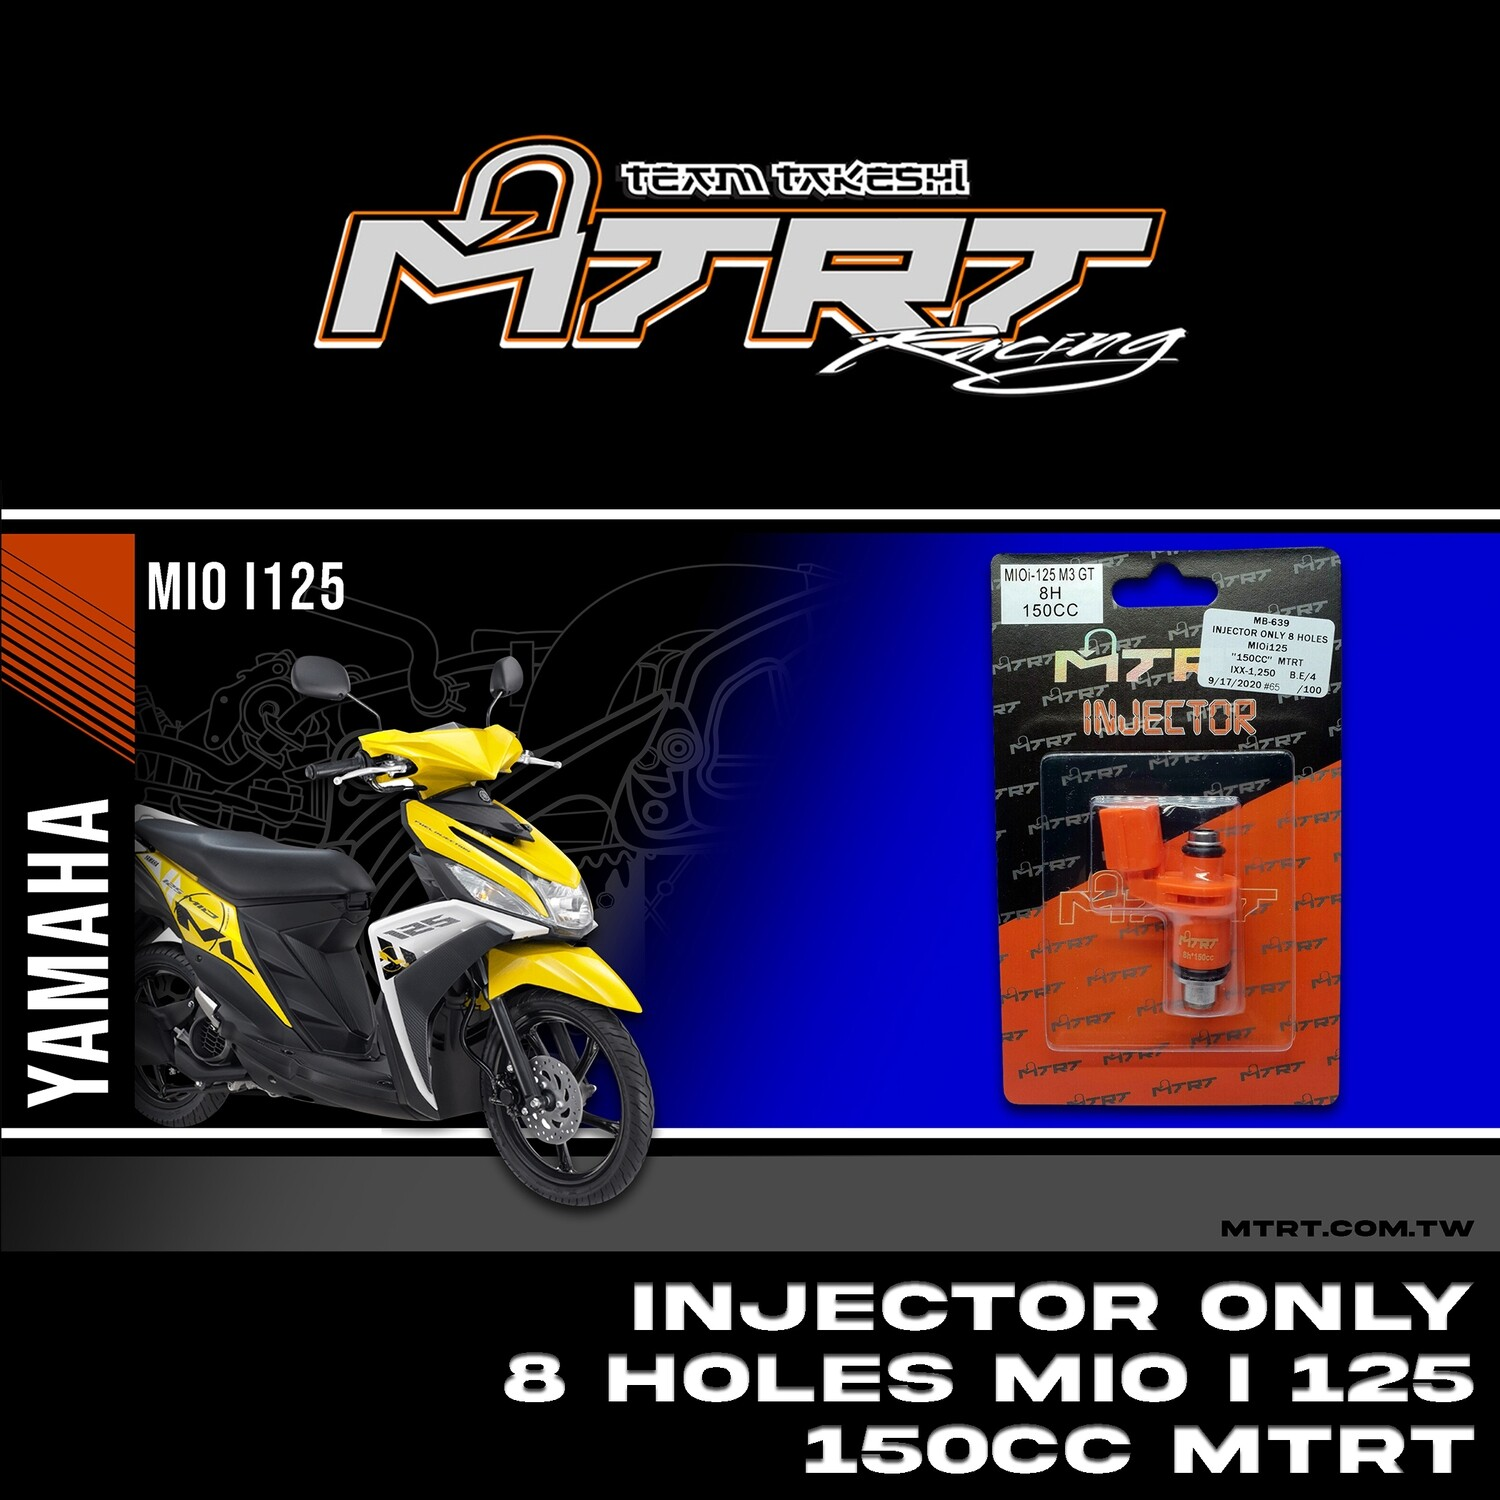 INJECTOR ONLY 8HOLES  MIOi125  150CC MTRT